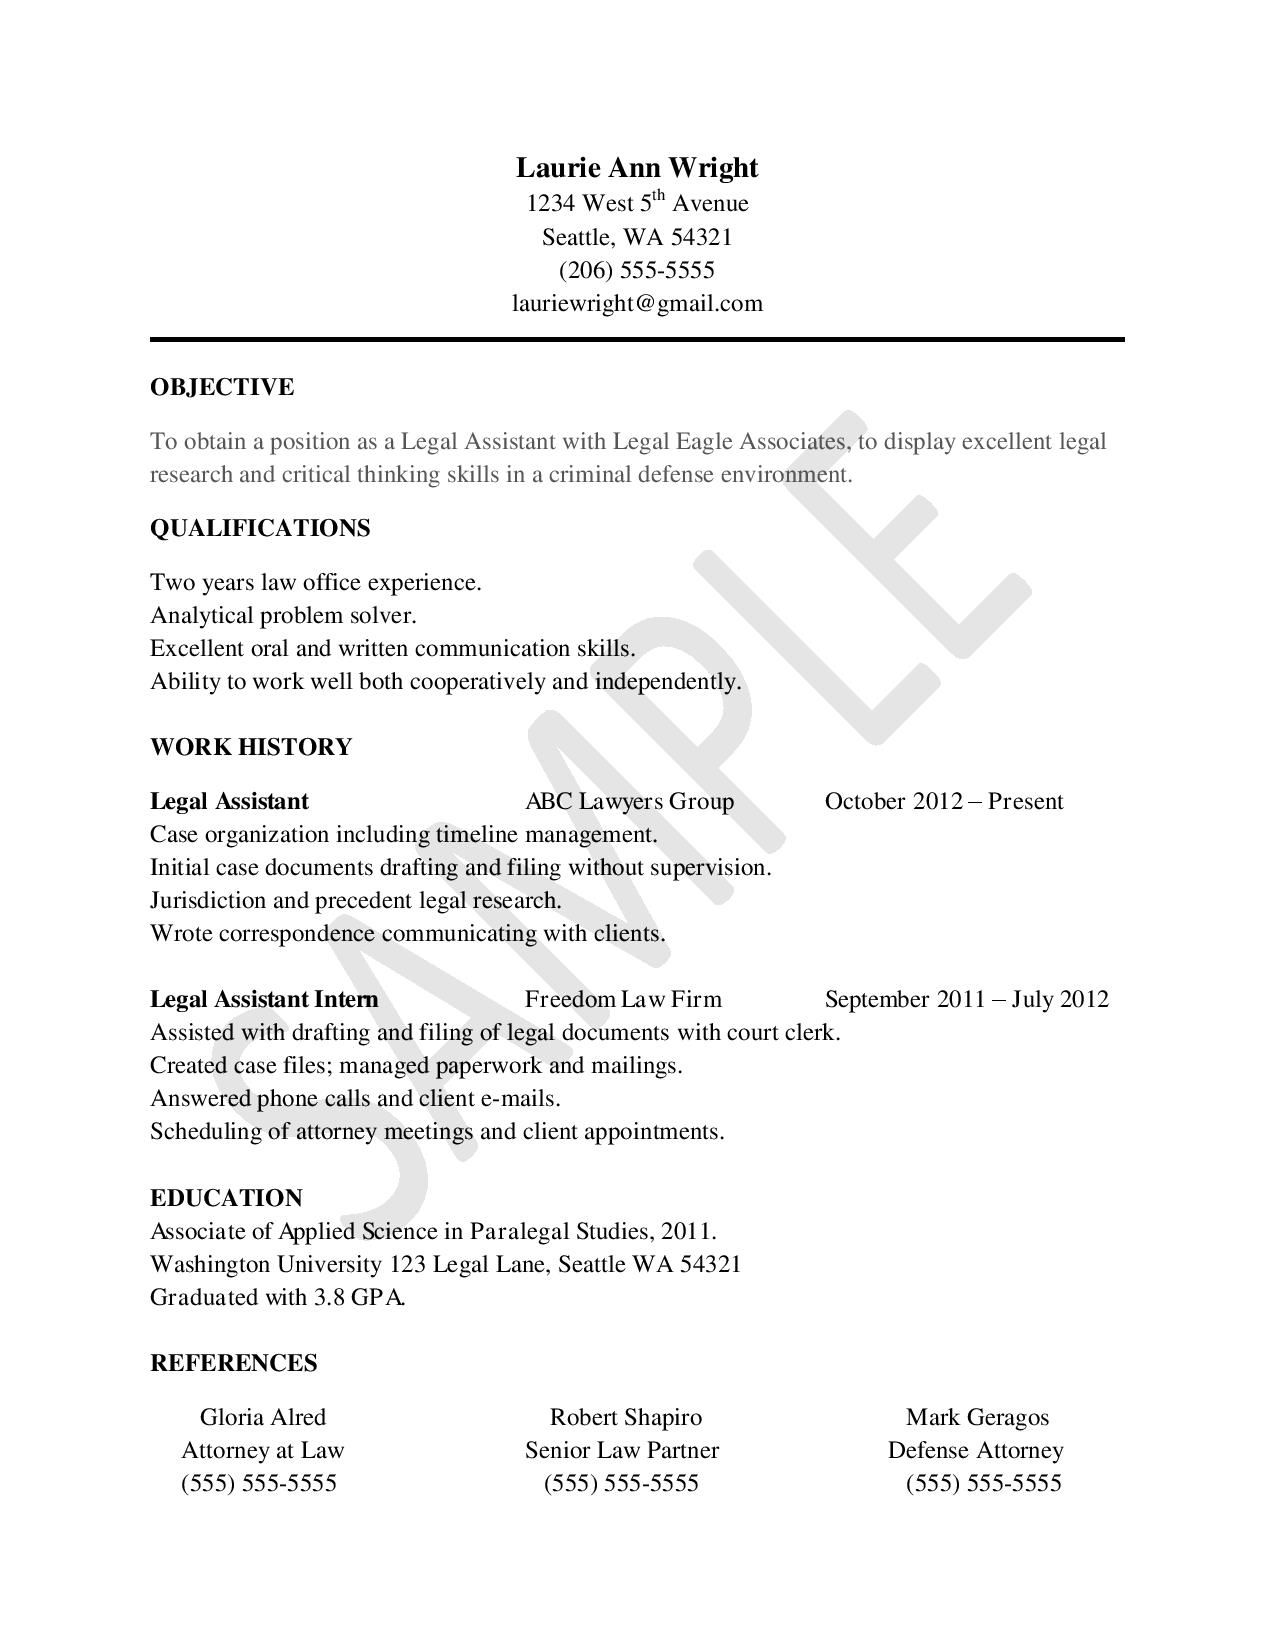 sample resume for legal assistants - Paralegal Resumes Examples